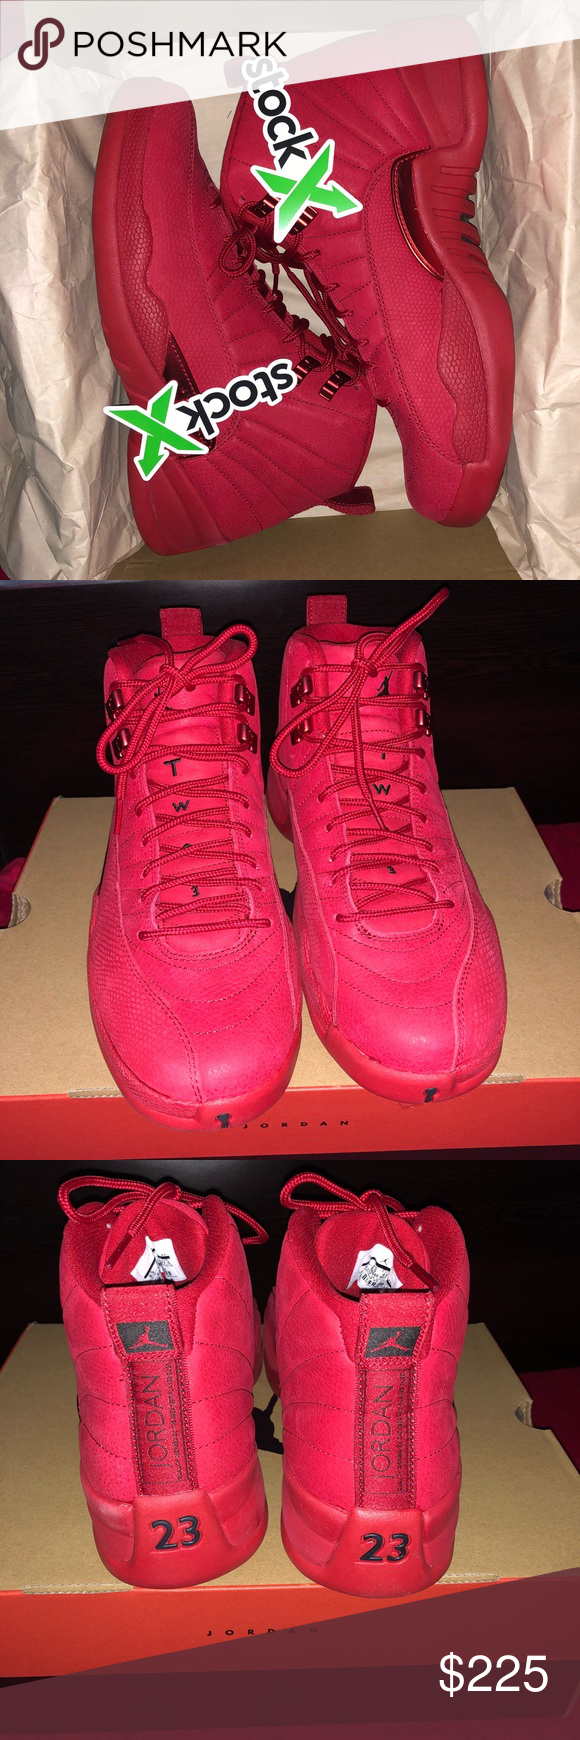 093f7c2f Jordan 12 Retro Gym Red I ordered the wrong size from StockX. 100%  Authentic Brand new. Jordan Shoes Sneakers